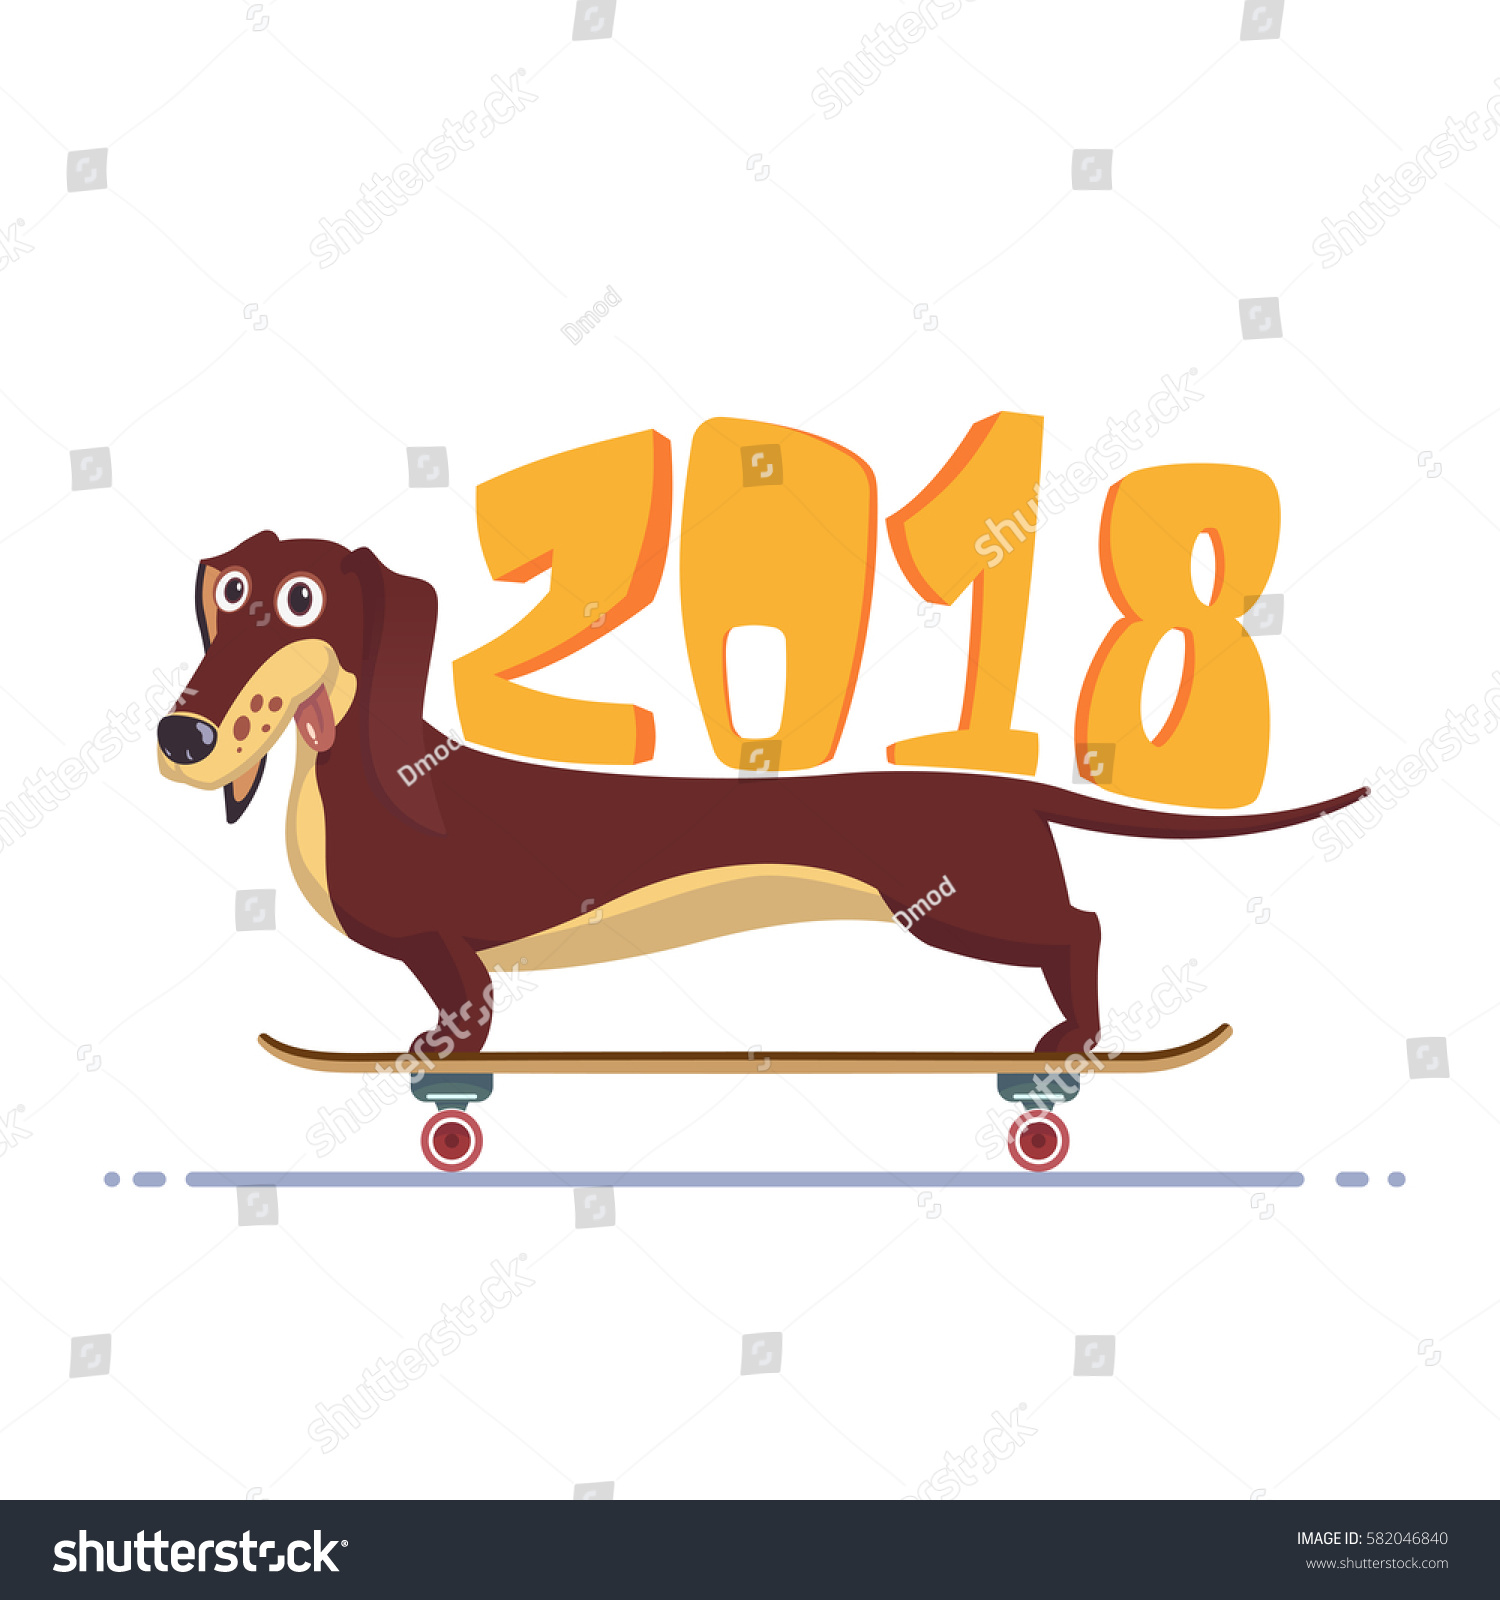 happy new year 2018 greeting card stock vector 582046840 shutterstock rh shutterstock com  chinese new year greeting card clipart